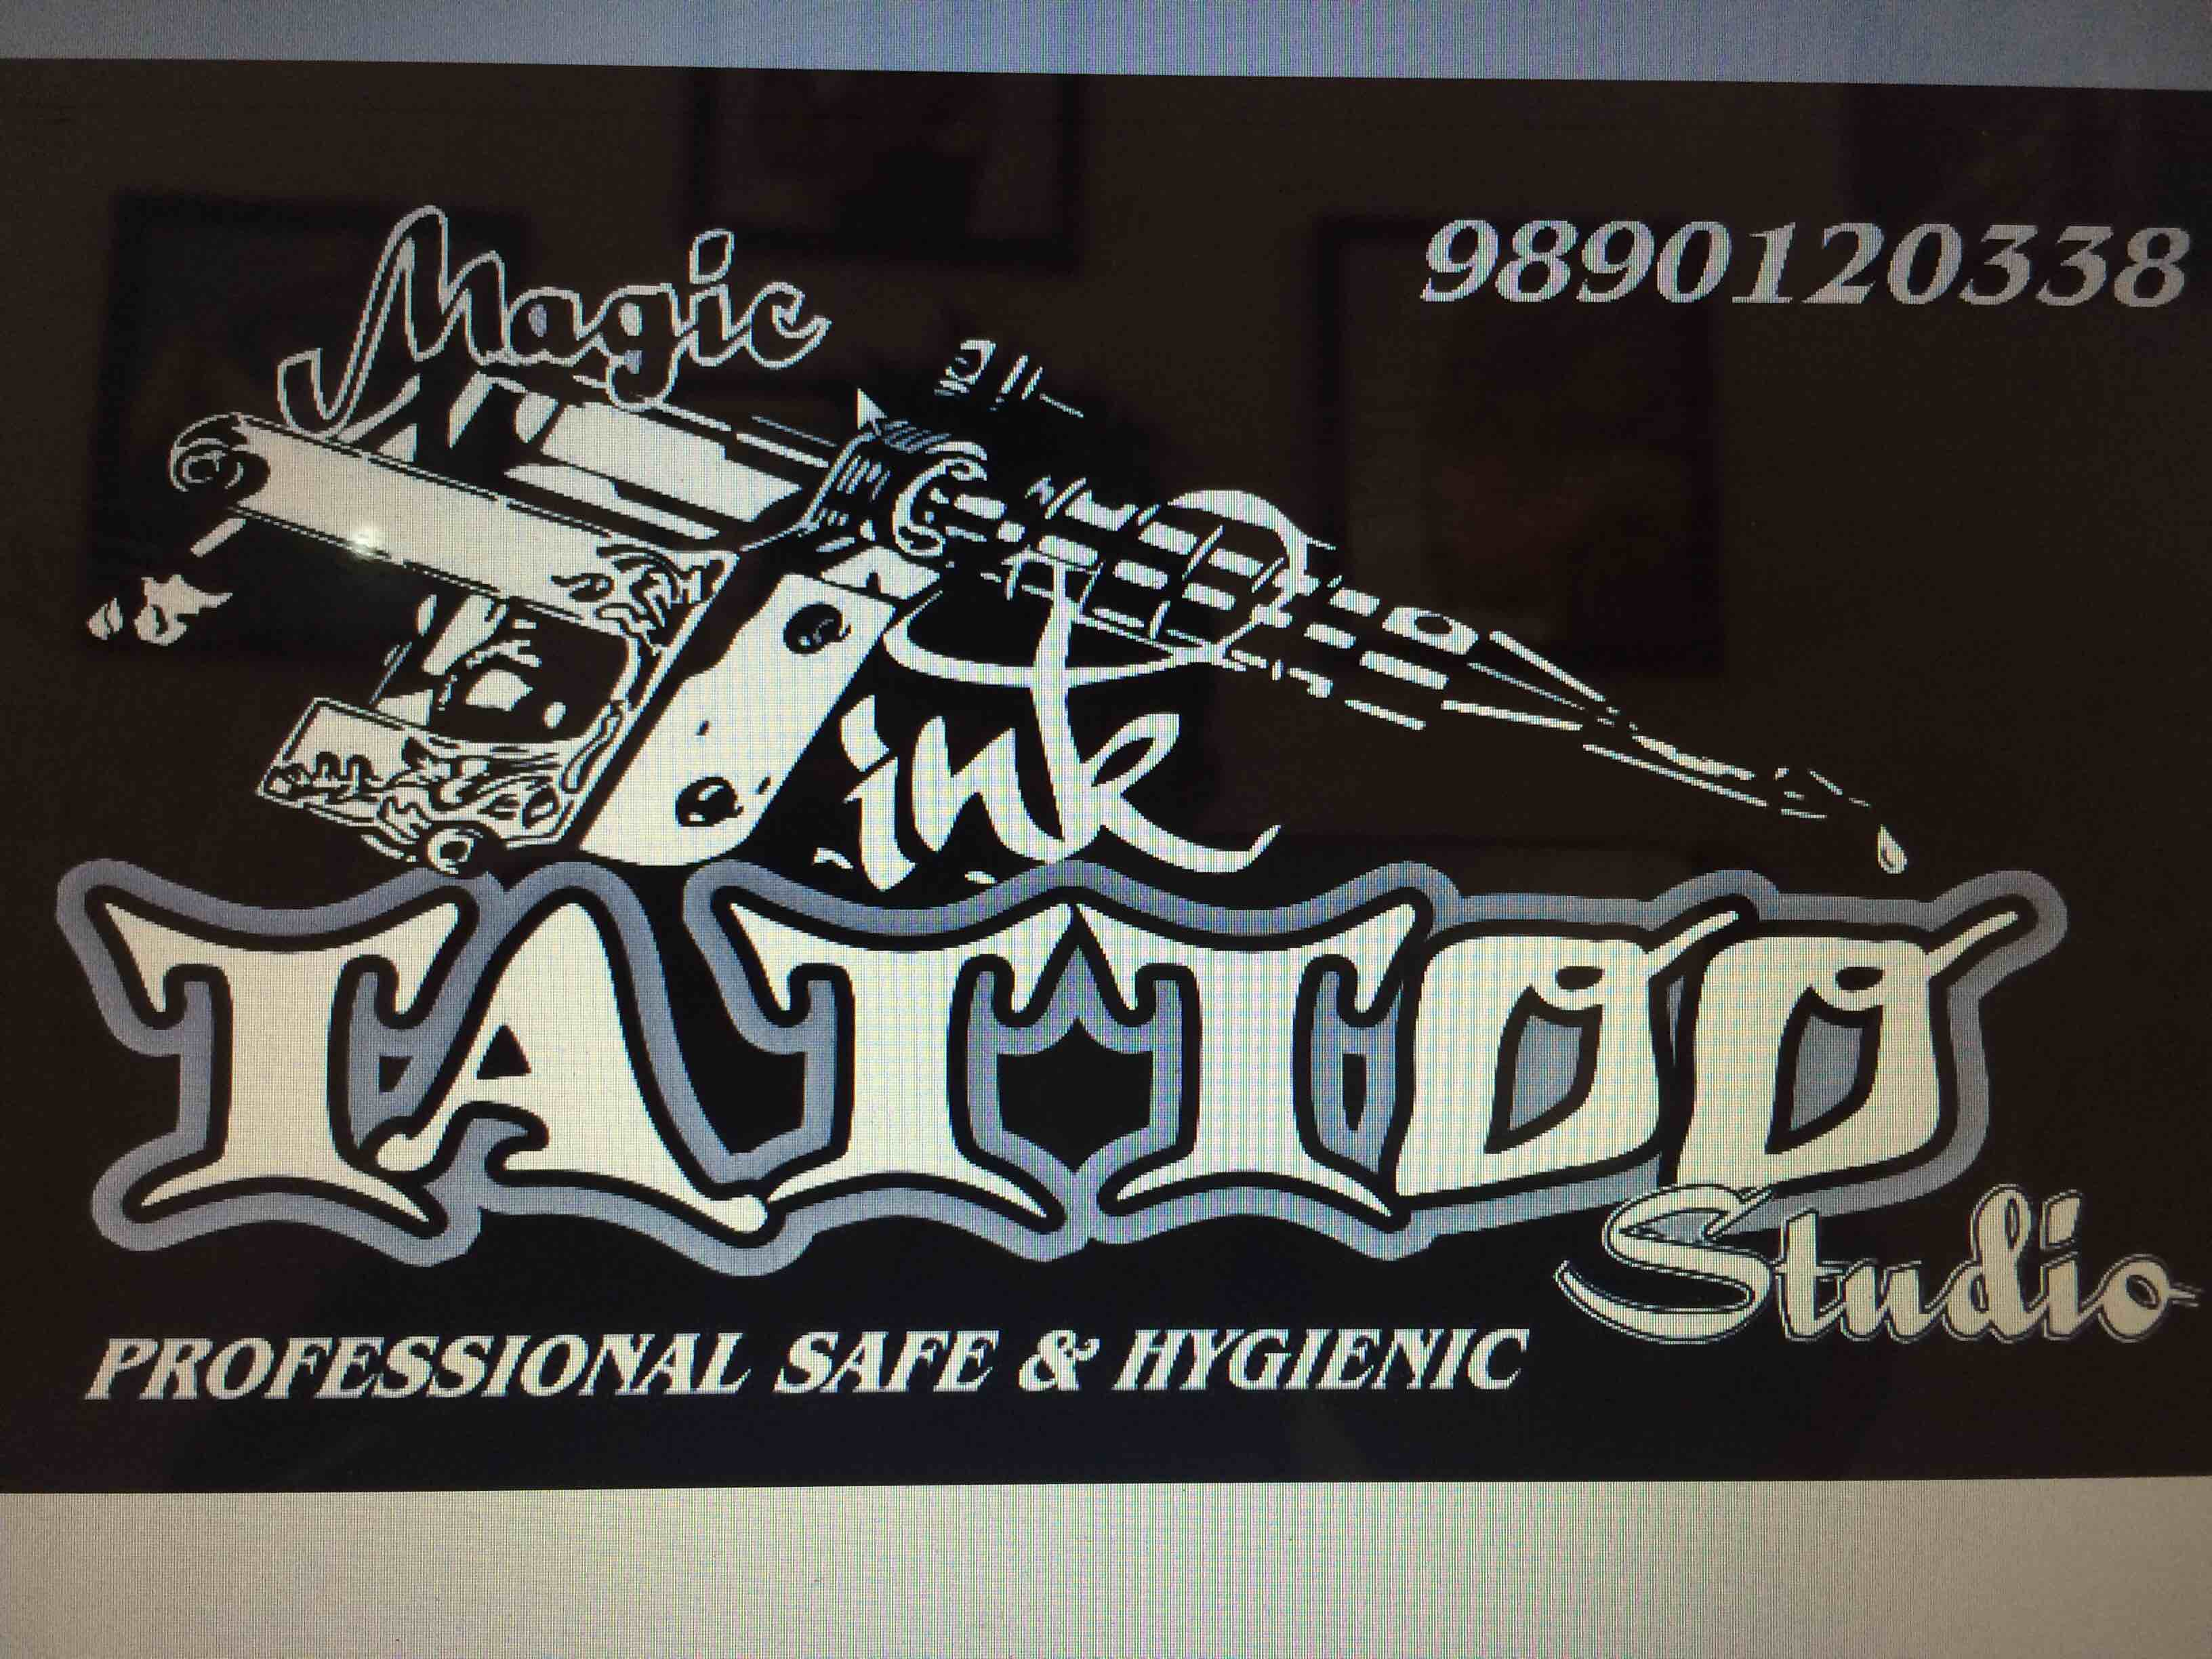 MAGIC ink tattoo studio goa - logo